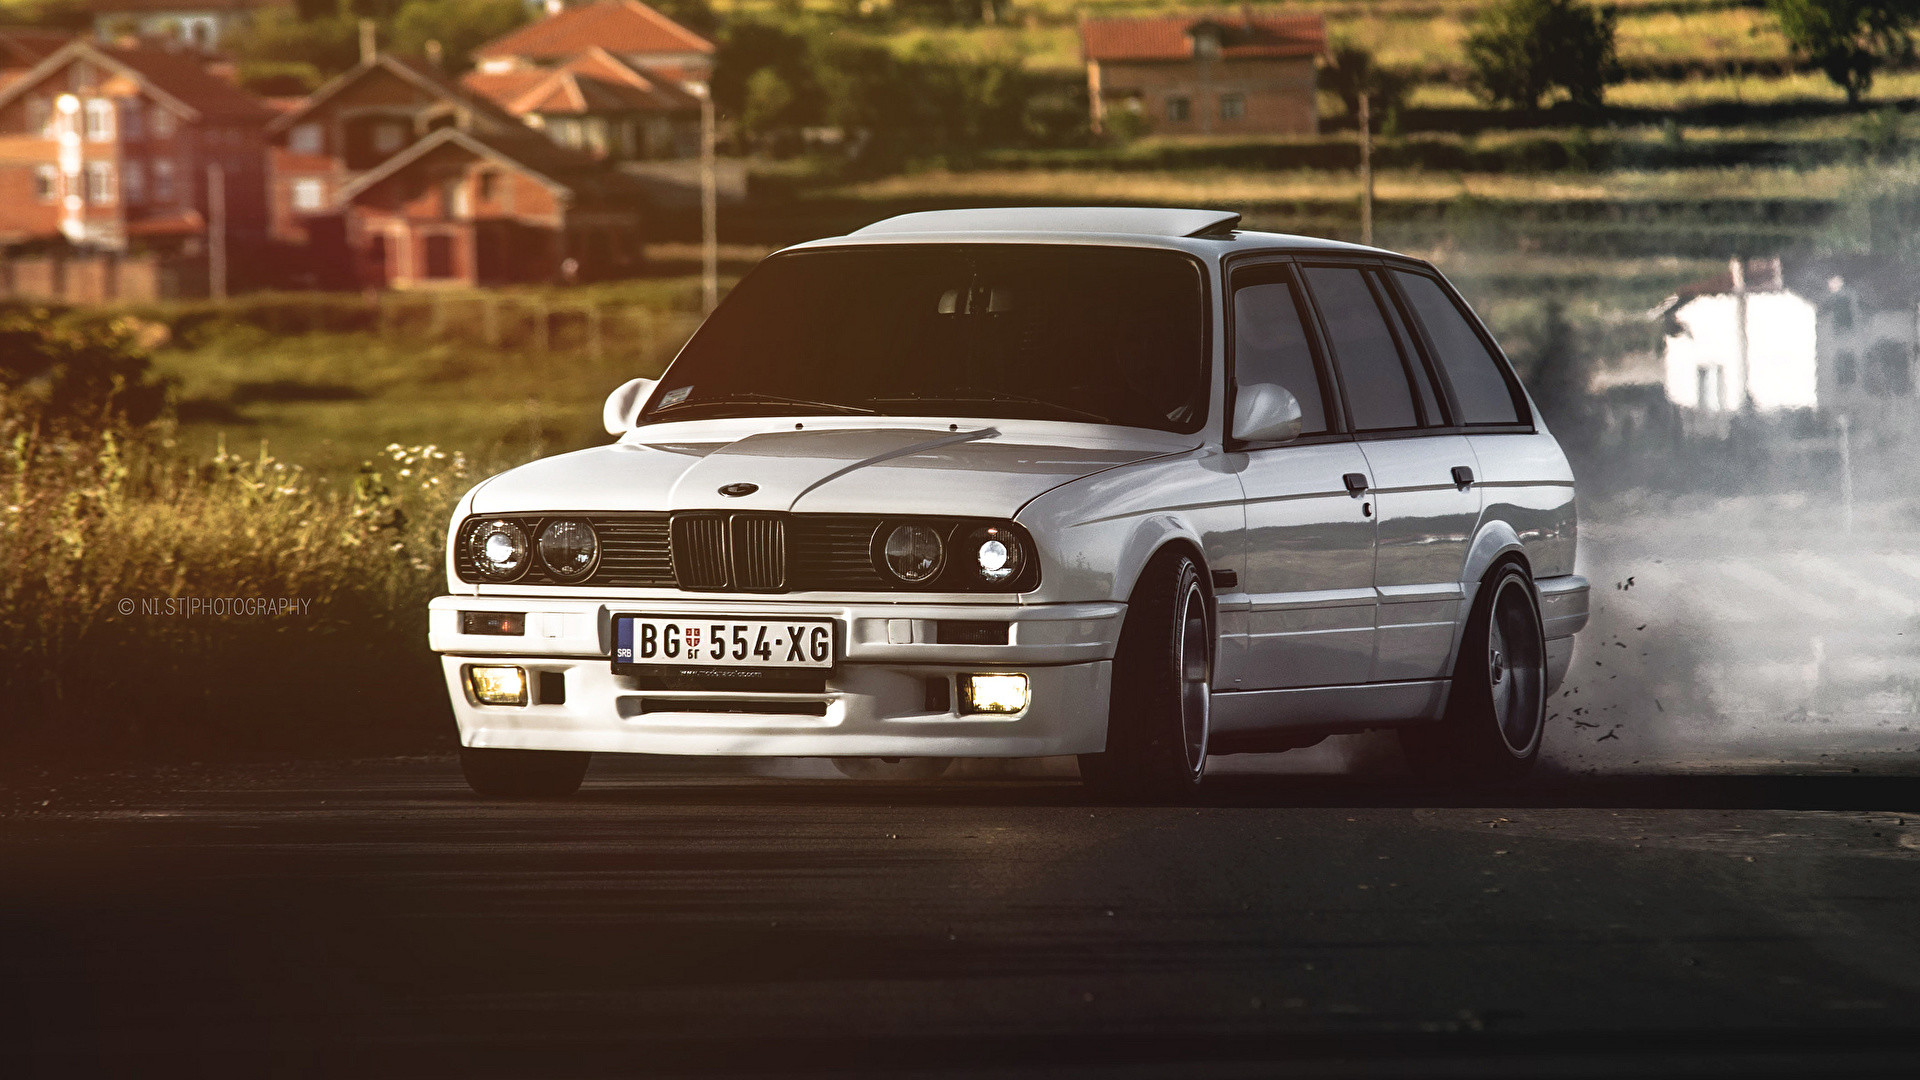 1920x1080 Wallpaper BMW E30 325 White auto Front  Cars automobile